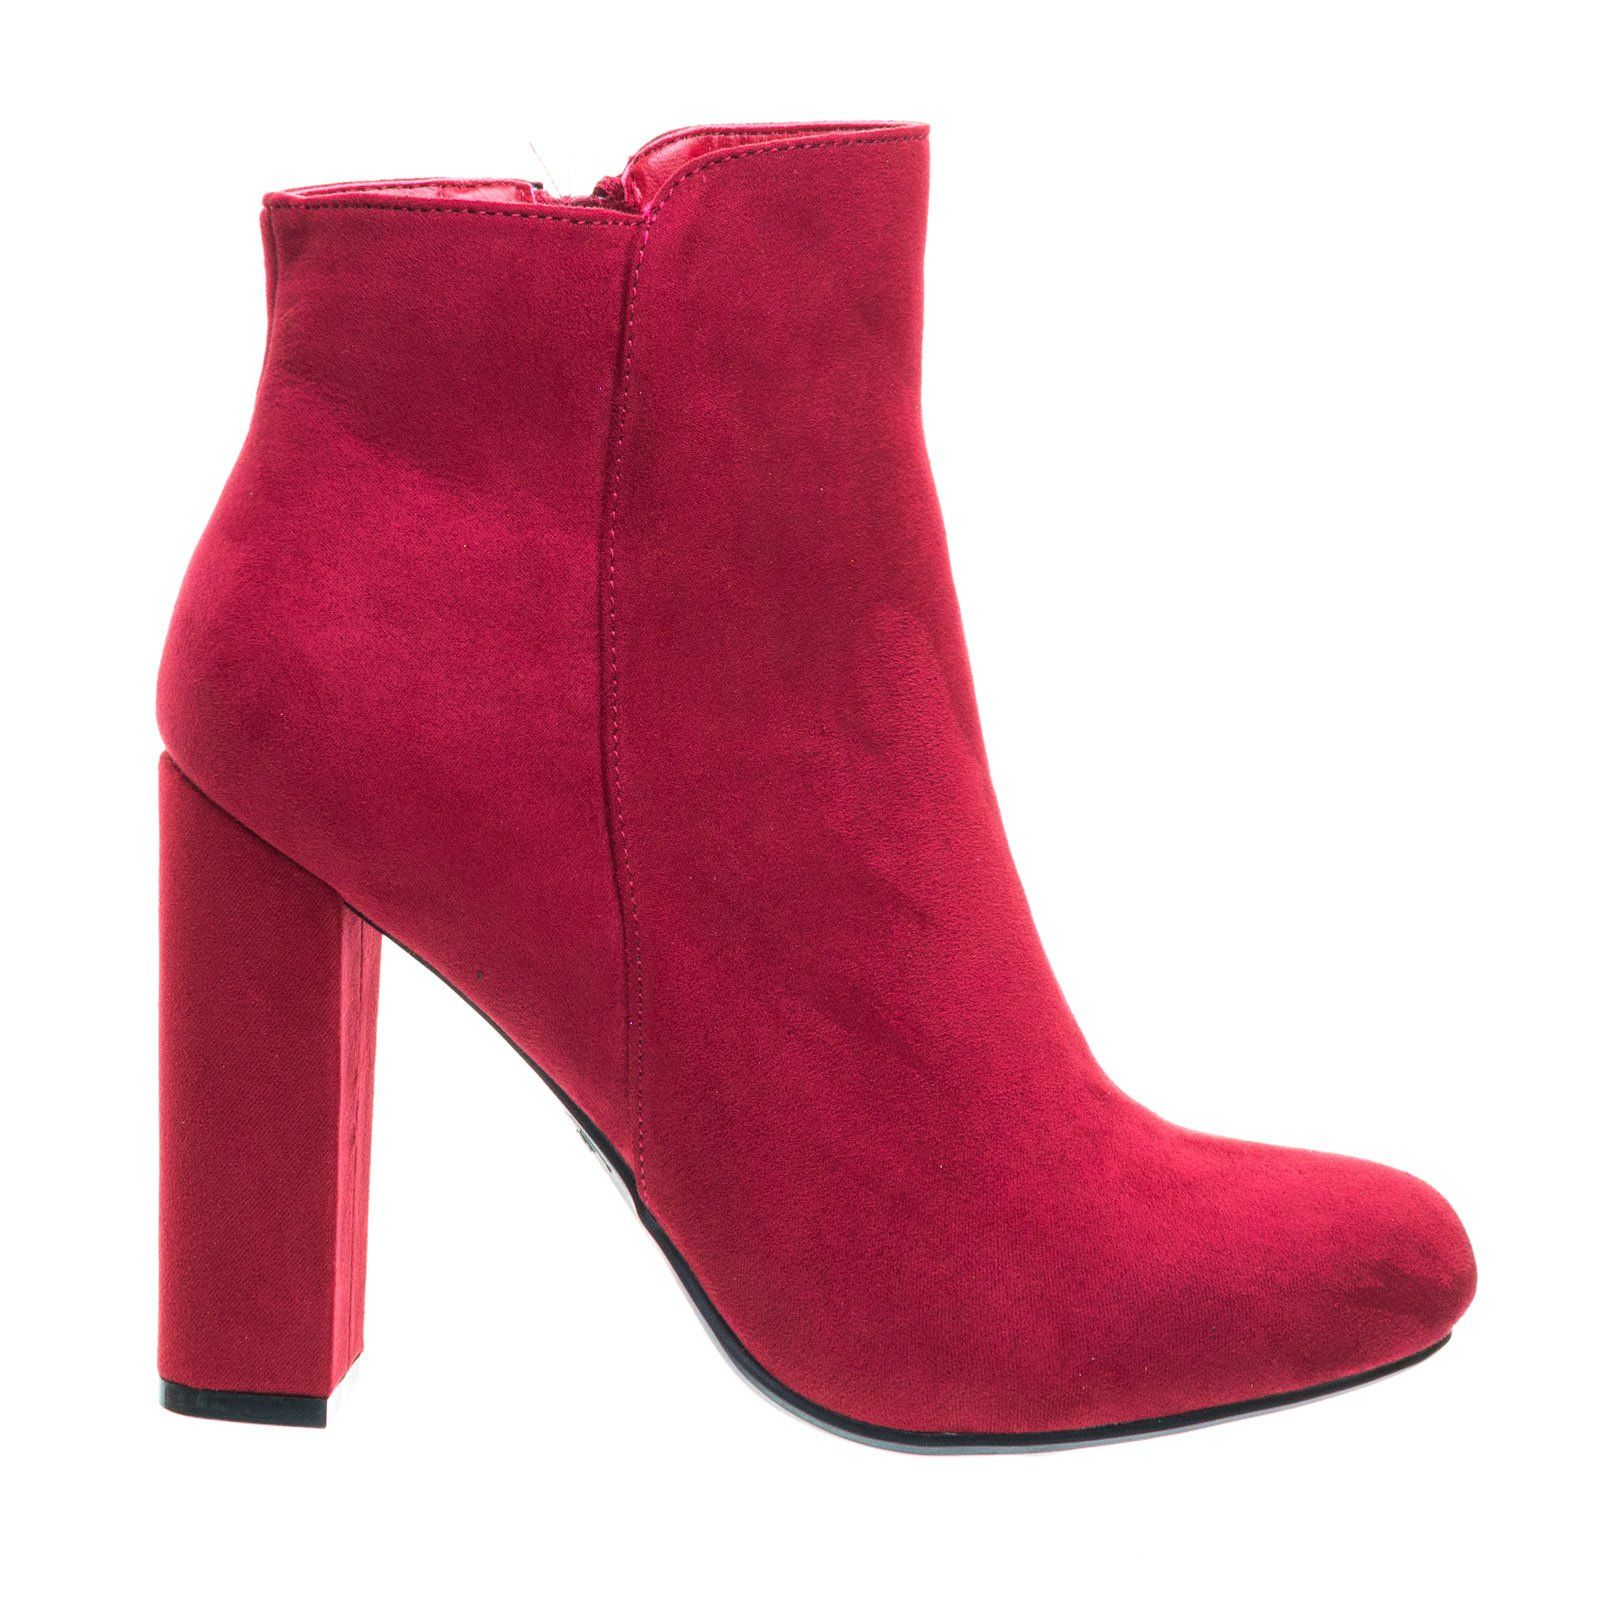 Embossed & Embroidery Block Heel Ankle Bootie w Faux Fur Lining